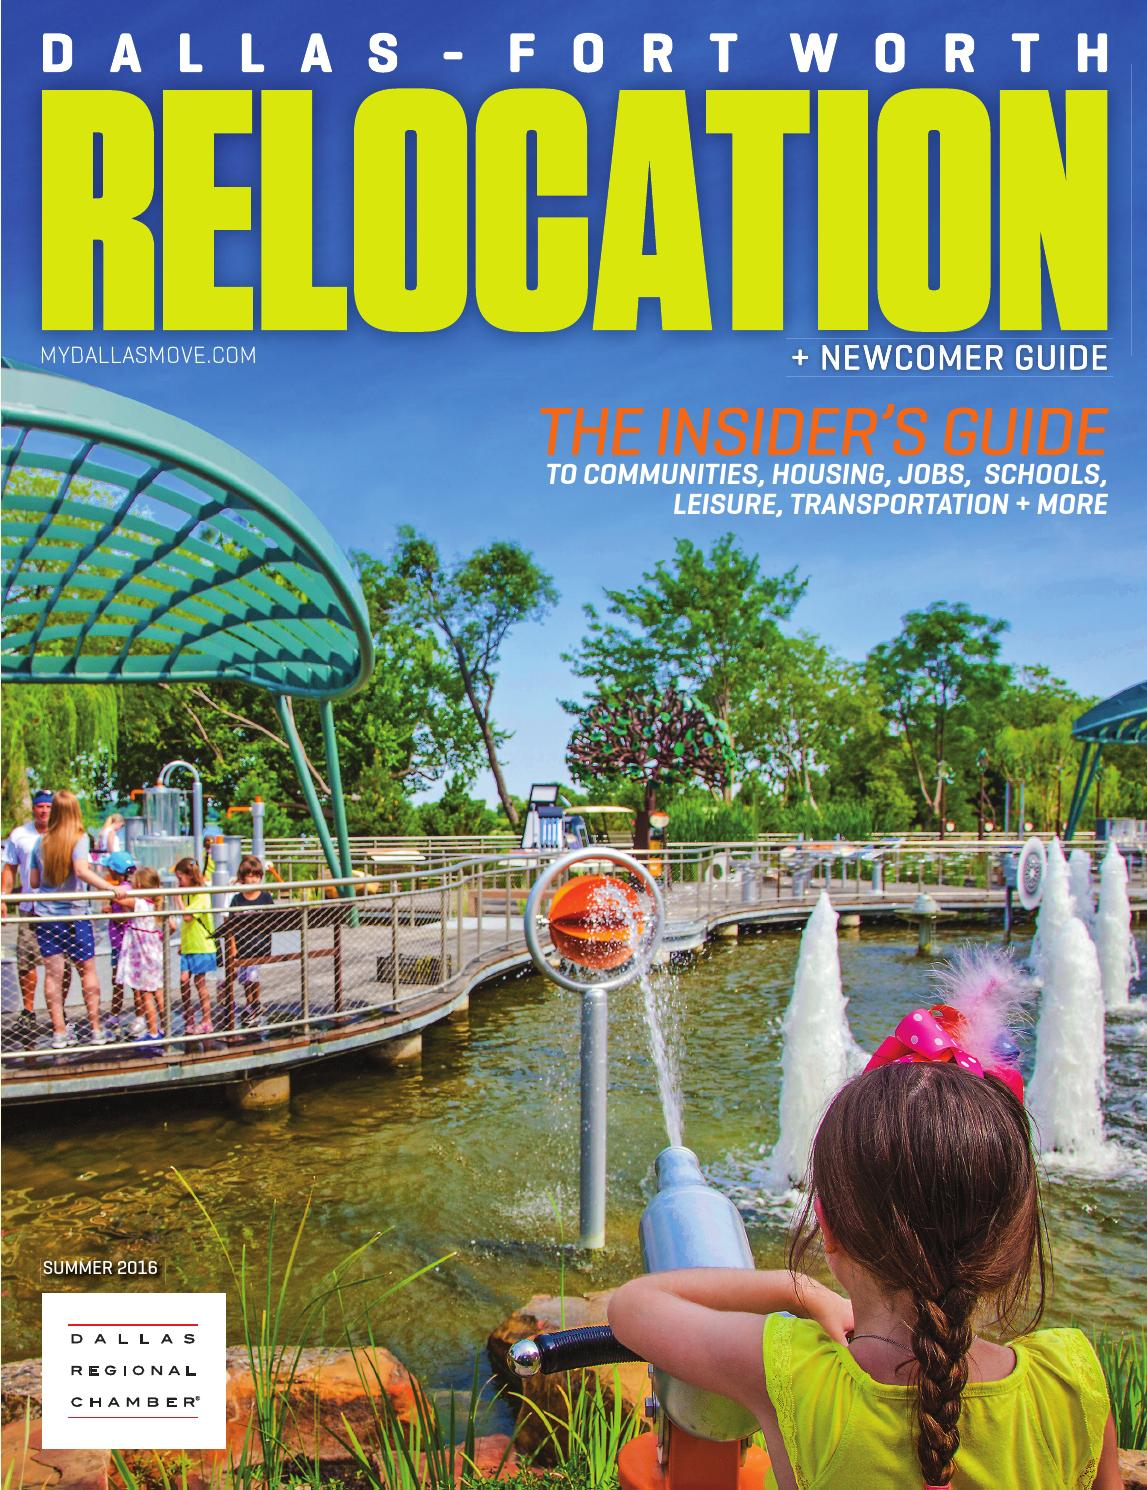 Dallas fort worth relocation newcomer guide summer 2016 by dallas regional chamber publications issuu